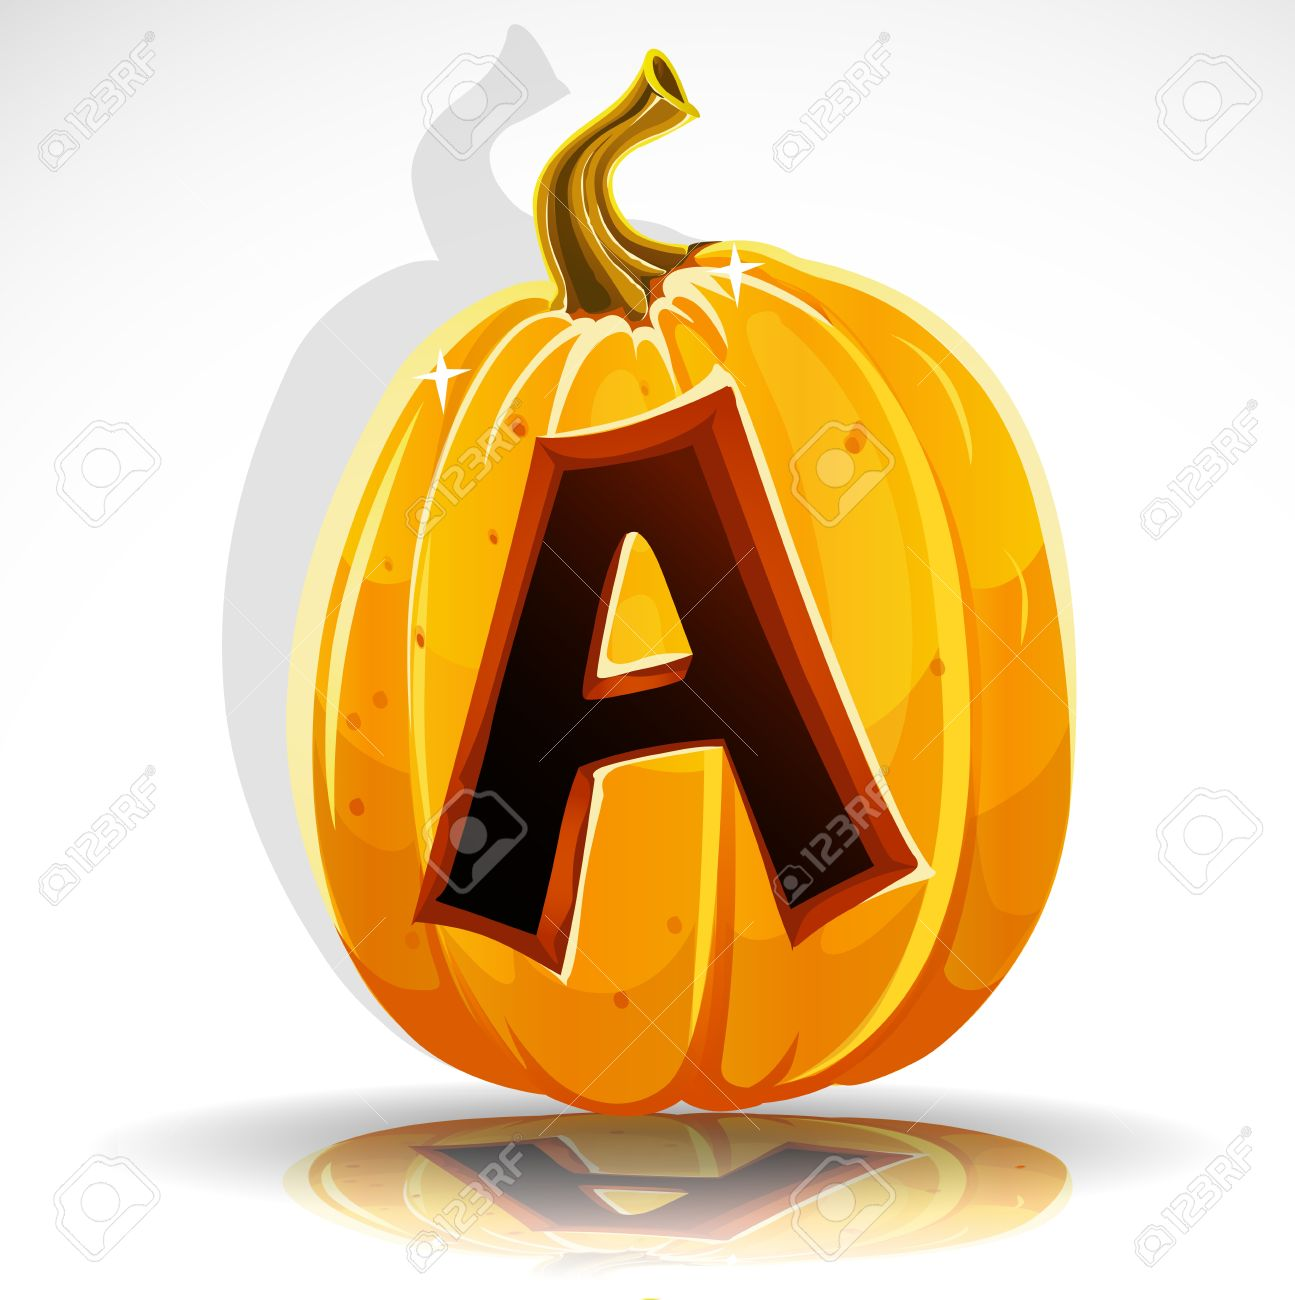 happy halloween font cut out pumpkin letter a royalty free cliparts